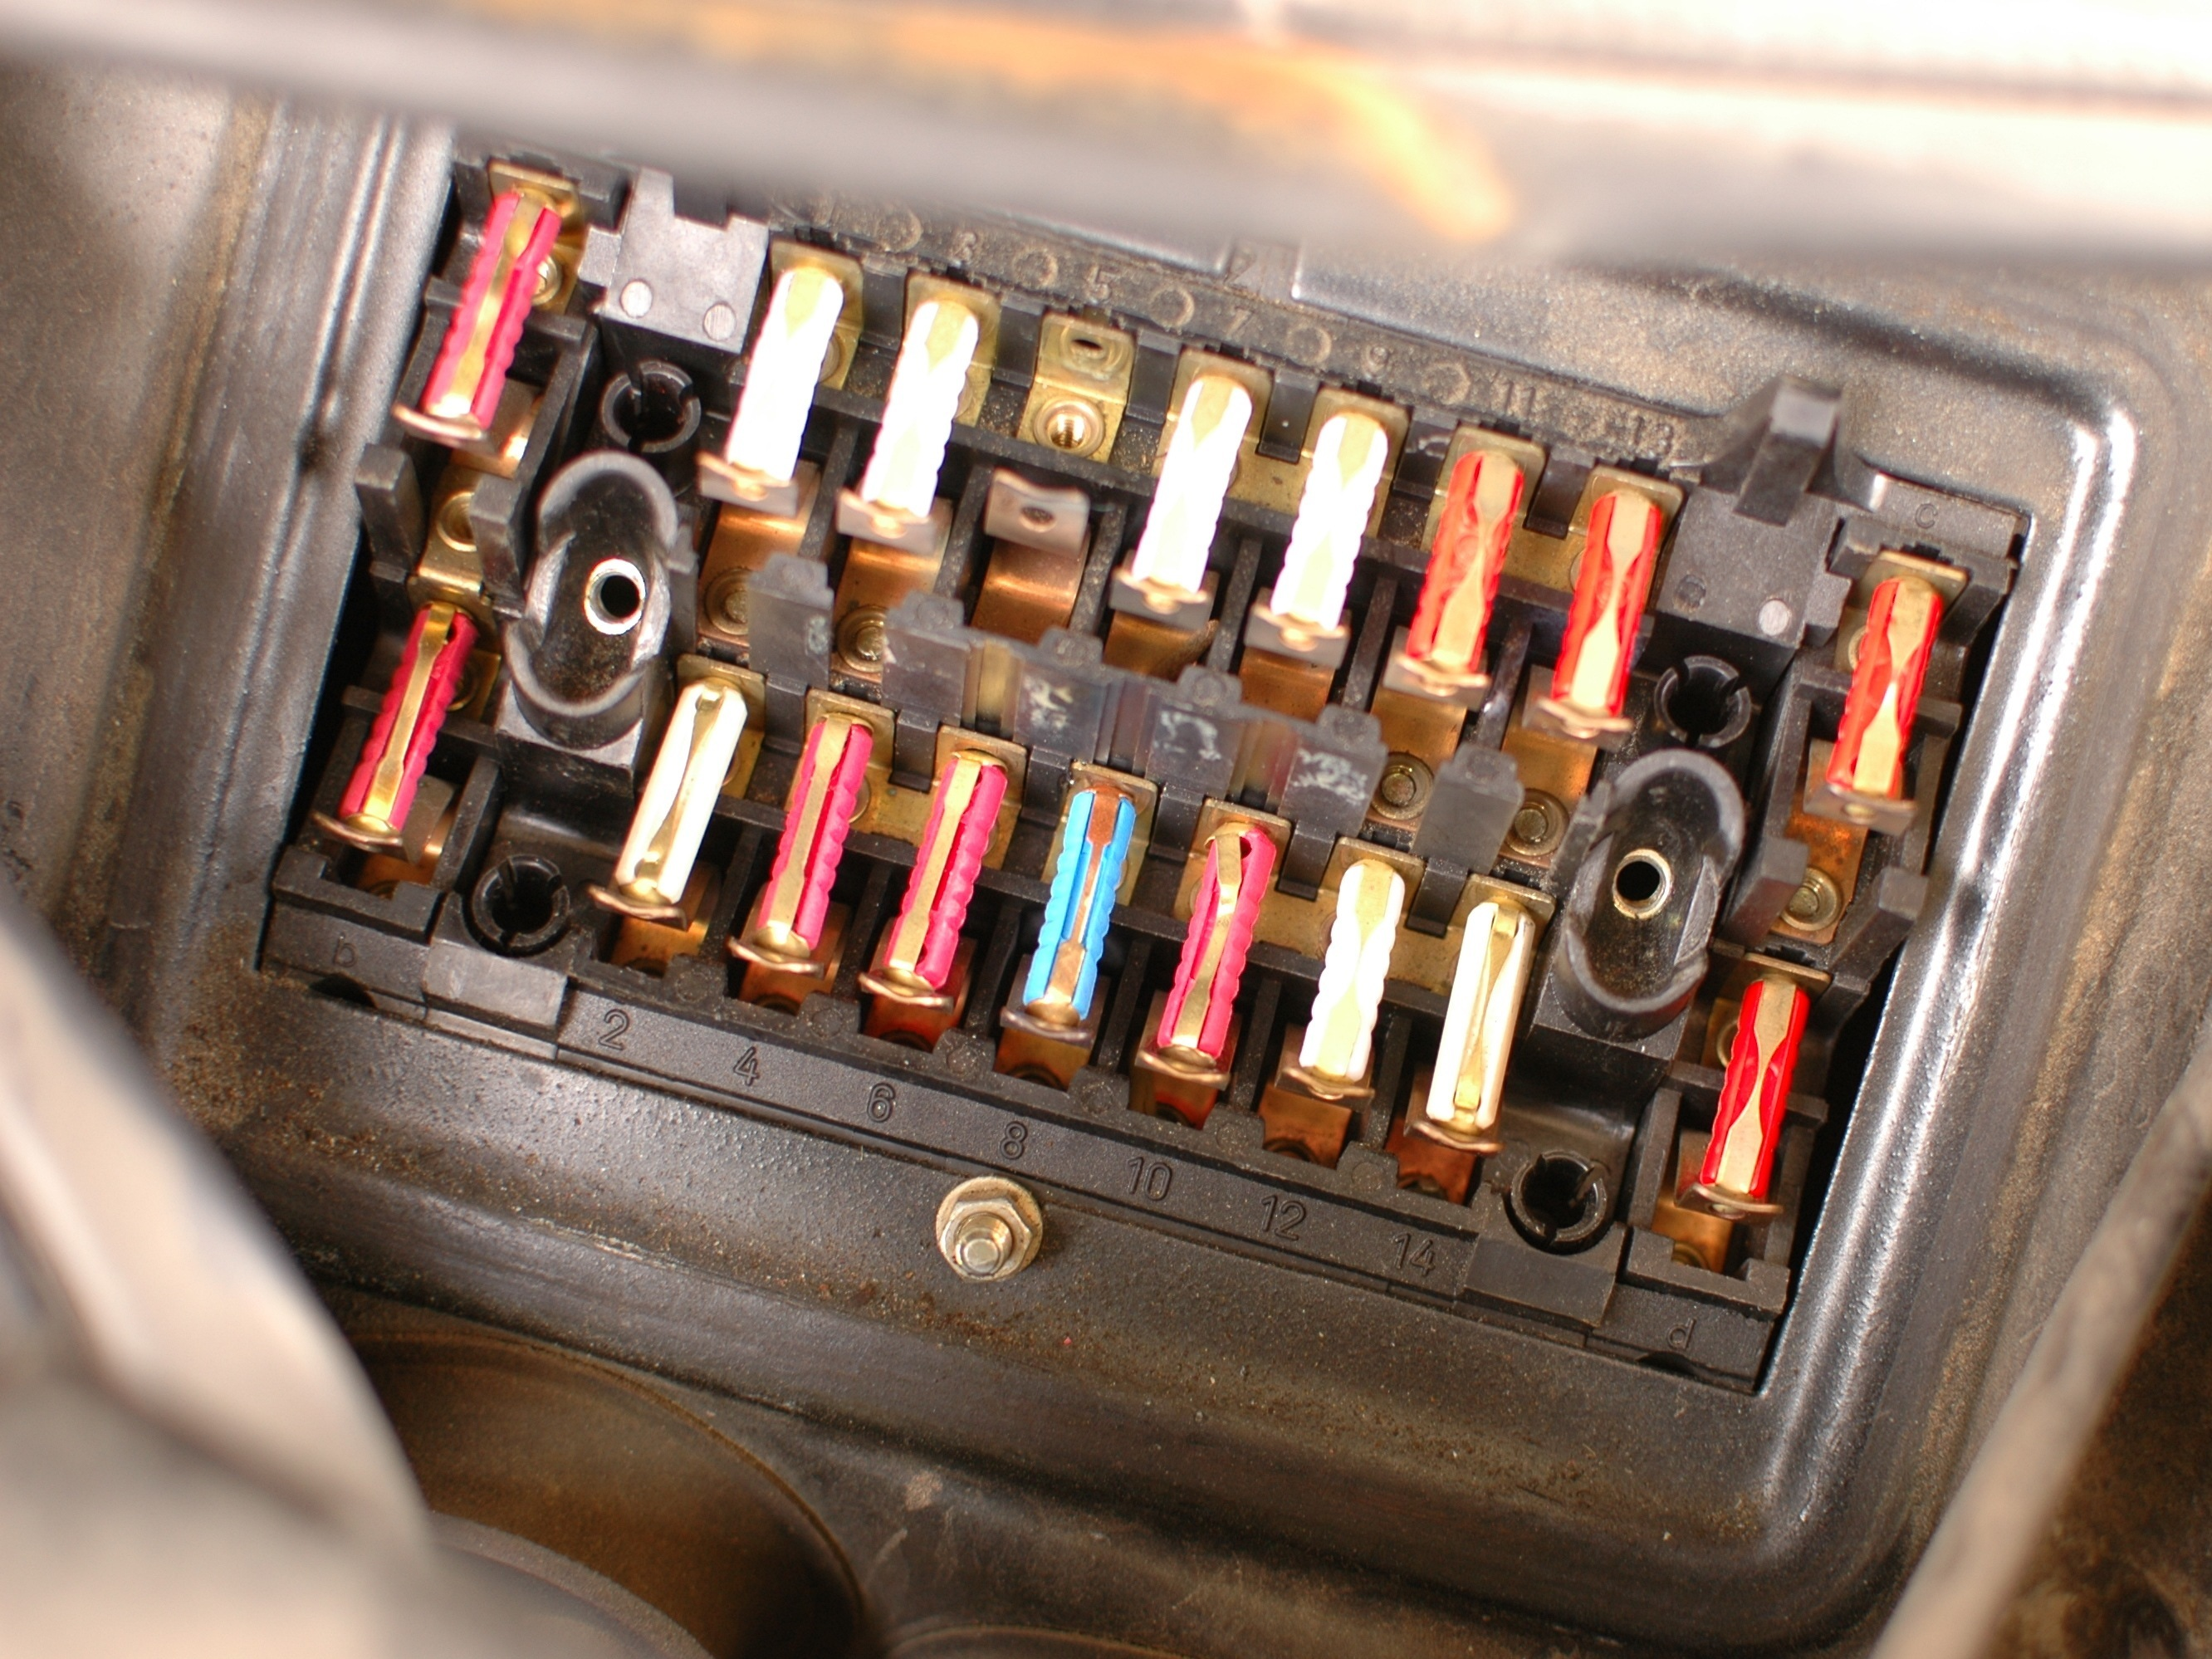 AfYAfmoCaMTVU2ap how to check mercedes w123 fuses ifixit 1978 Mercedes 450SEL at aneh.co